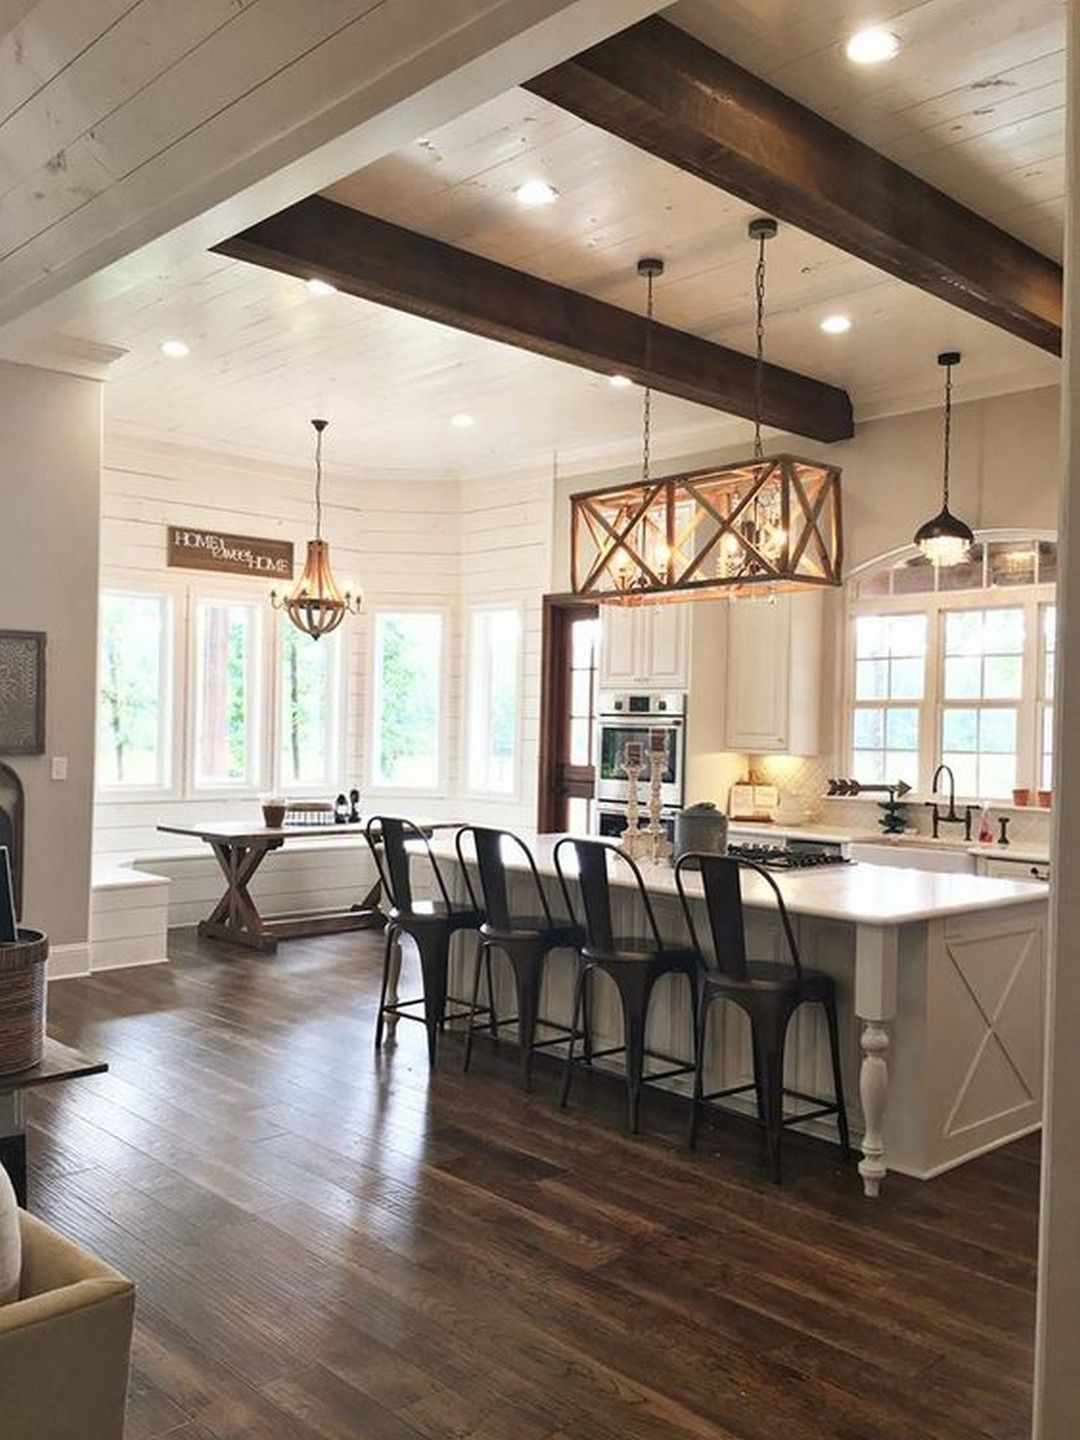 awesome 99 farmhouse kitchen ideas on a budget 2017 http://www